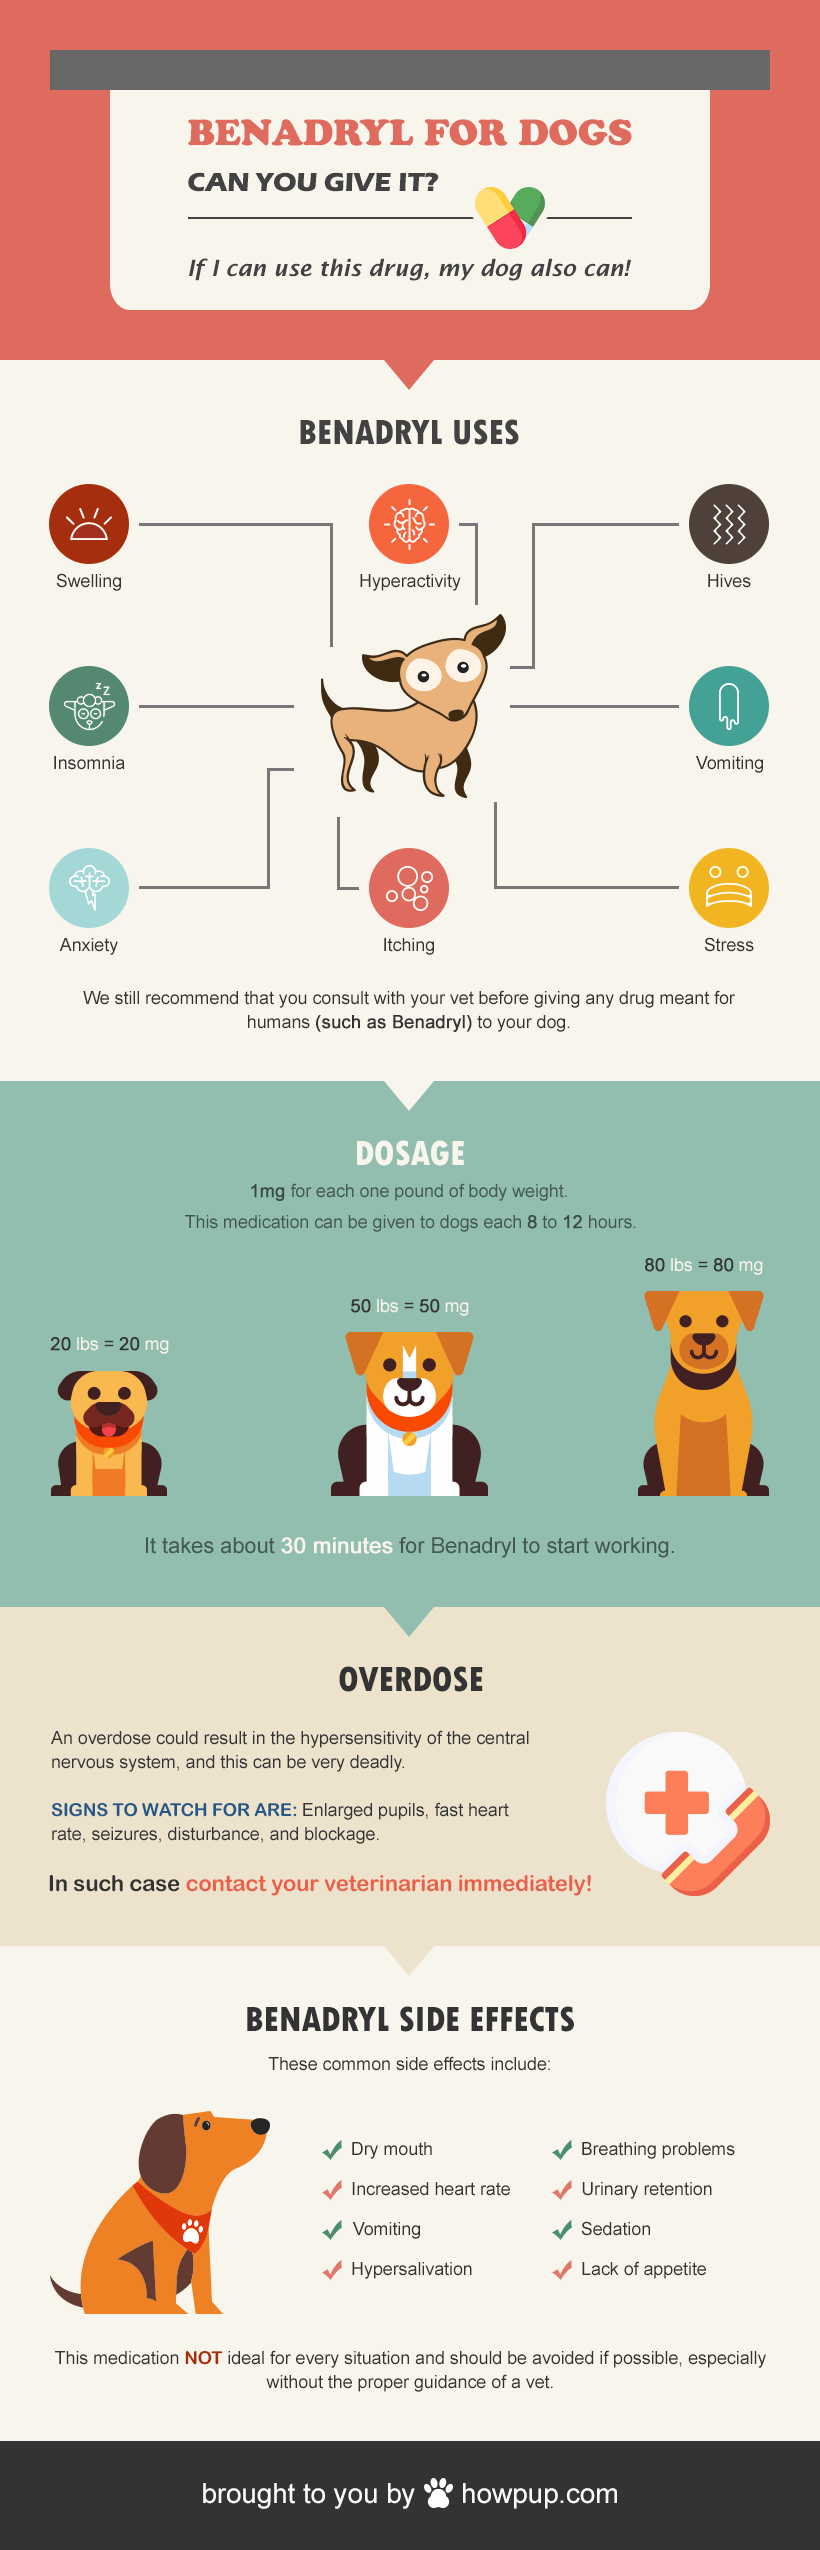 Pet Safety Infographic - benadryl uses for dogs: is benadryl safe for dogs?